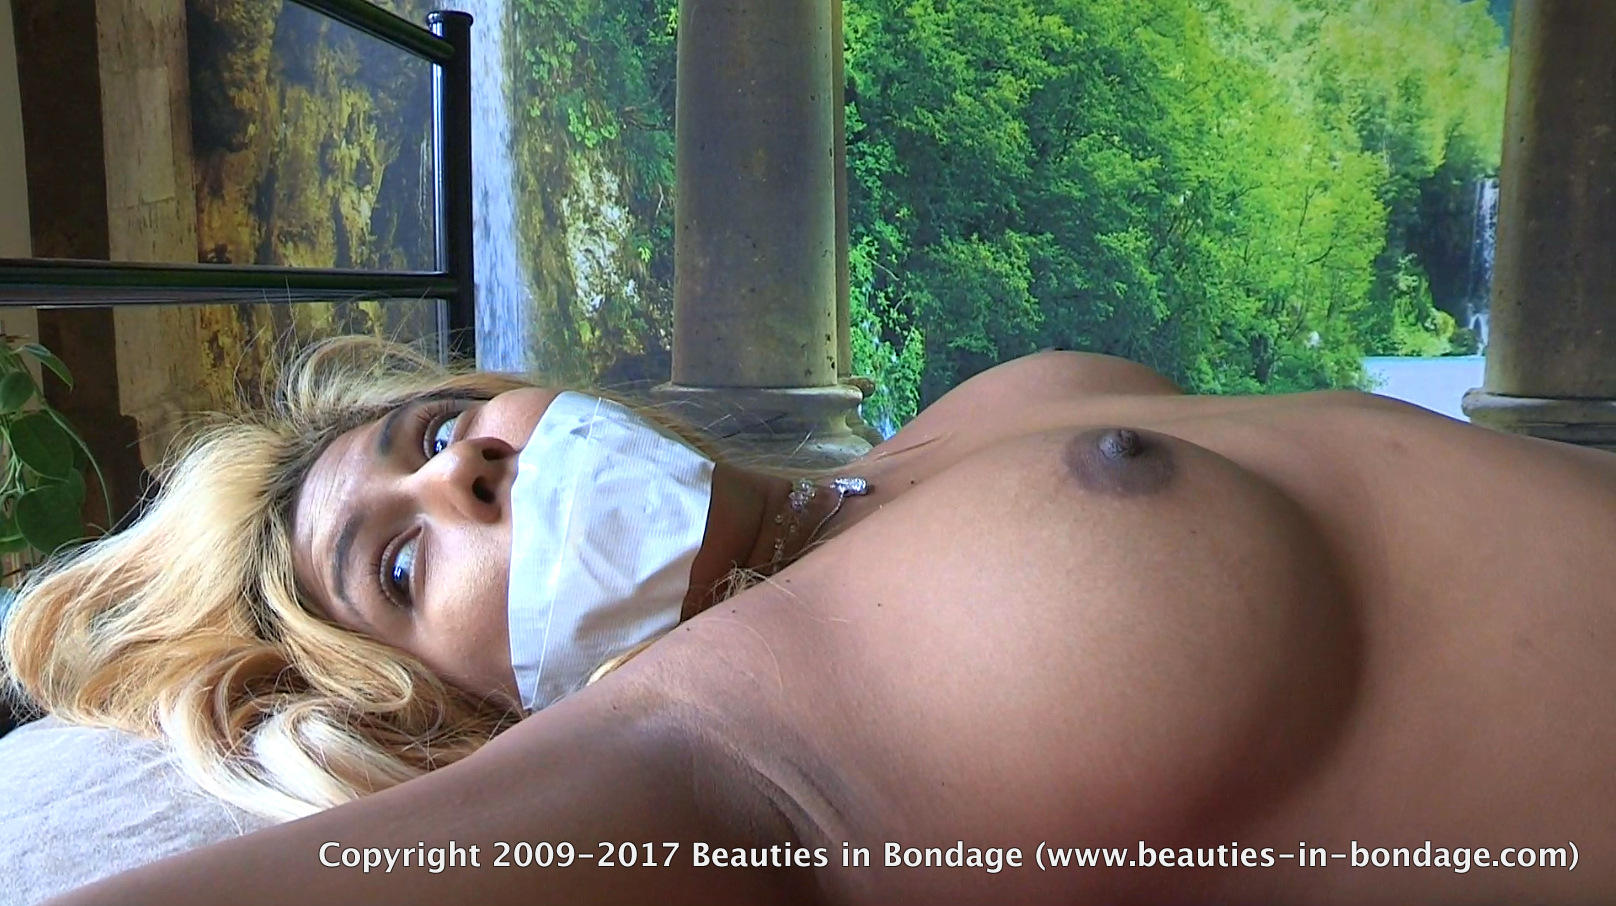 Good Beauties in boundage the